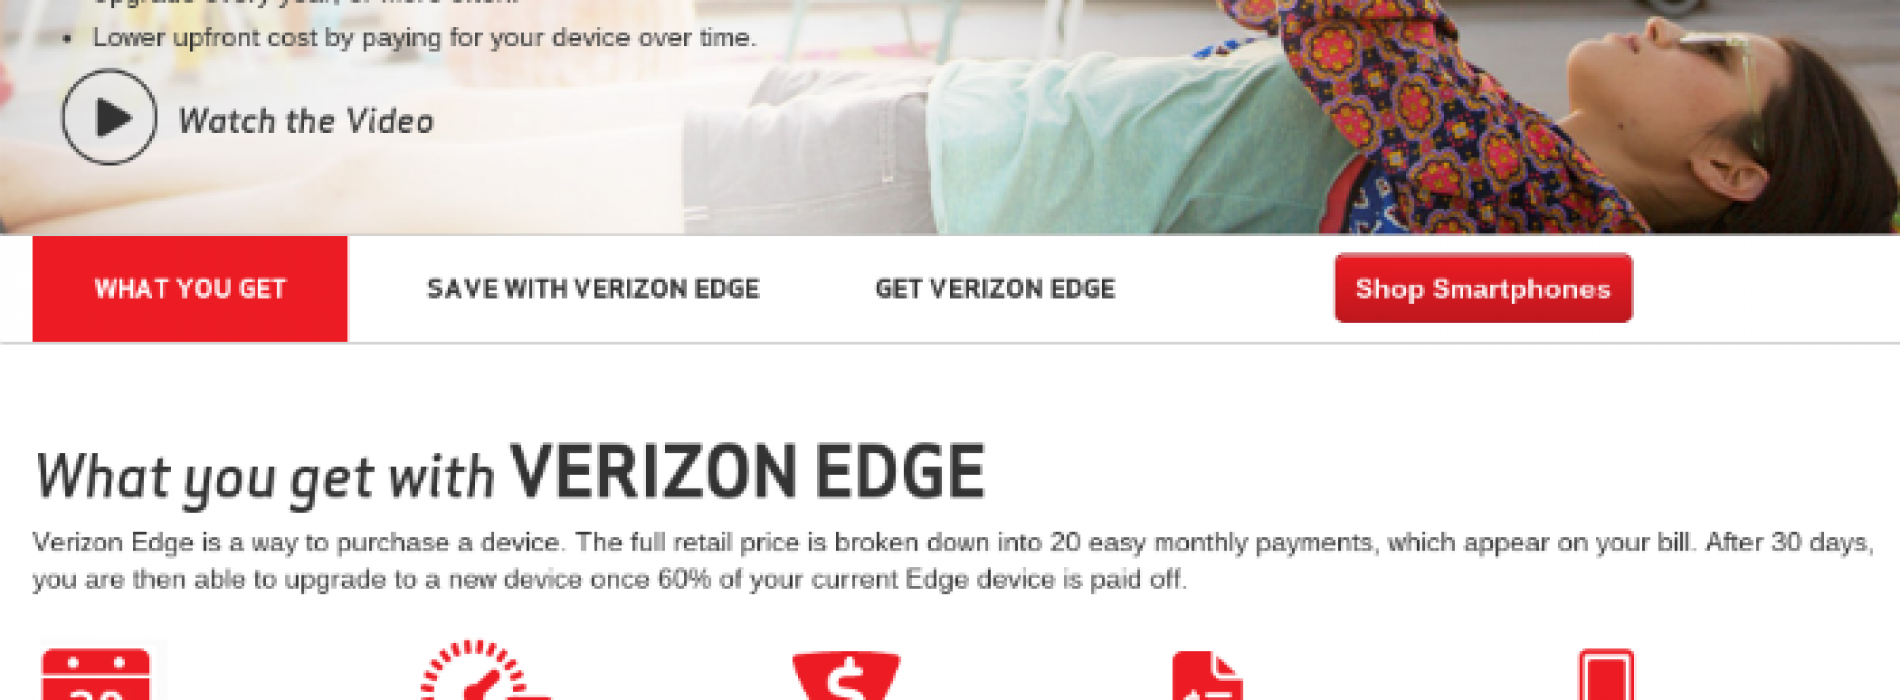 Verizon now offering tablets on EDGE payment plan